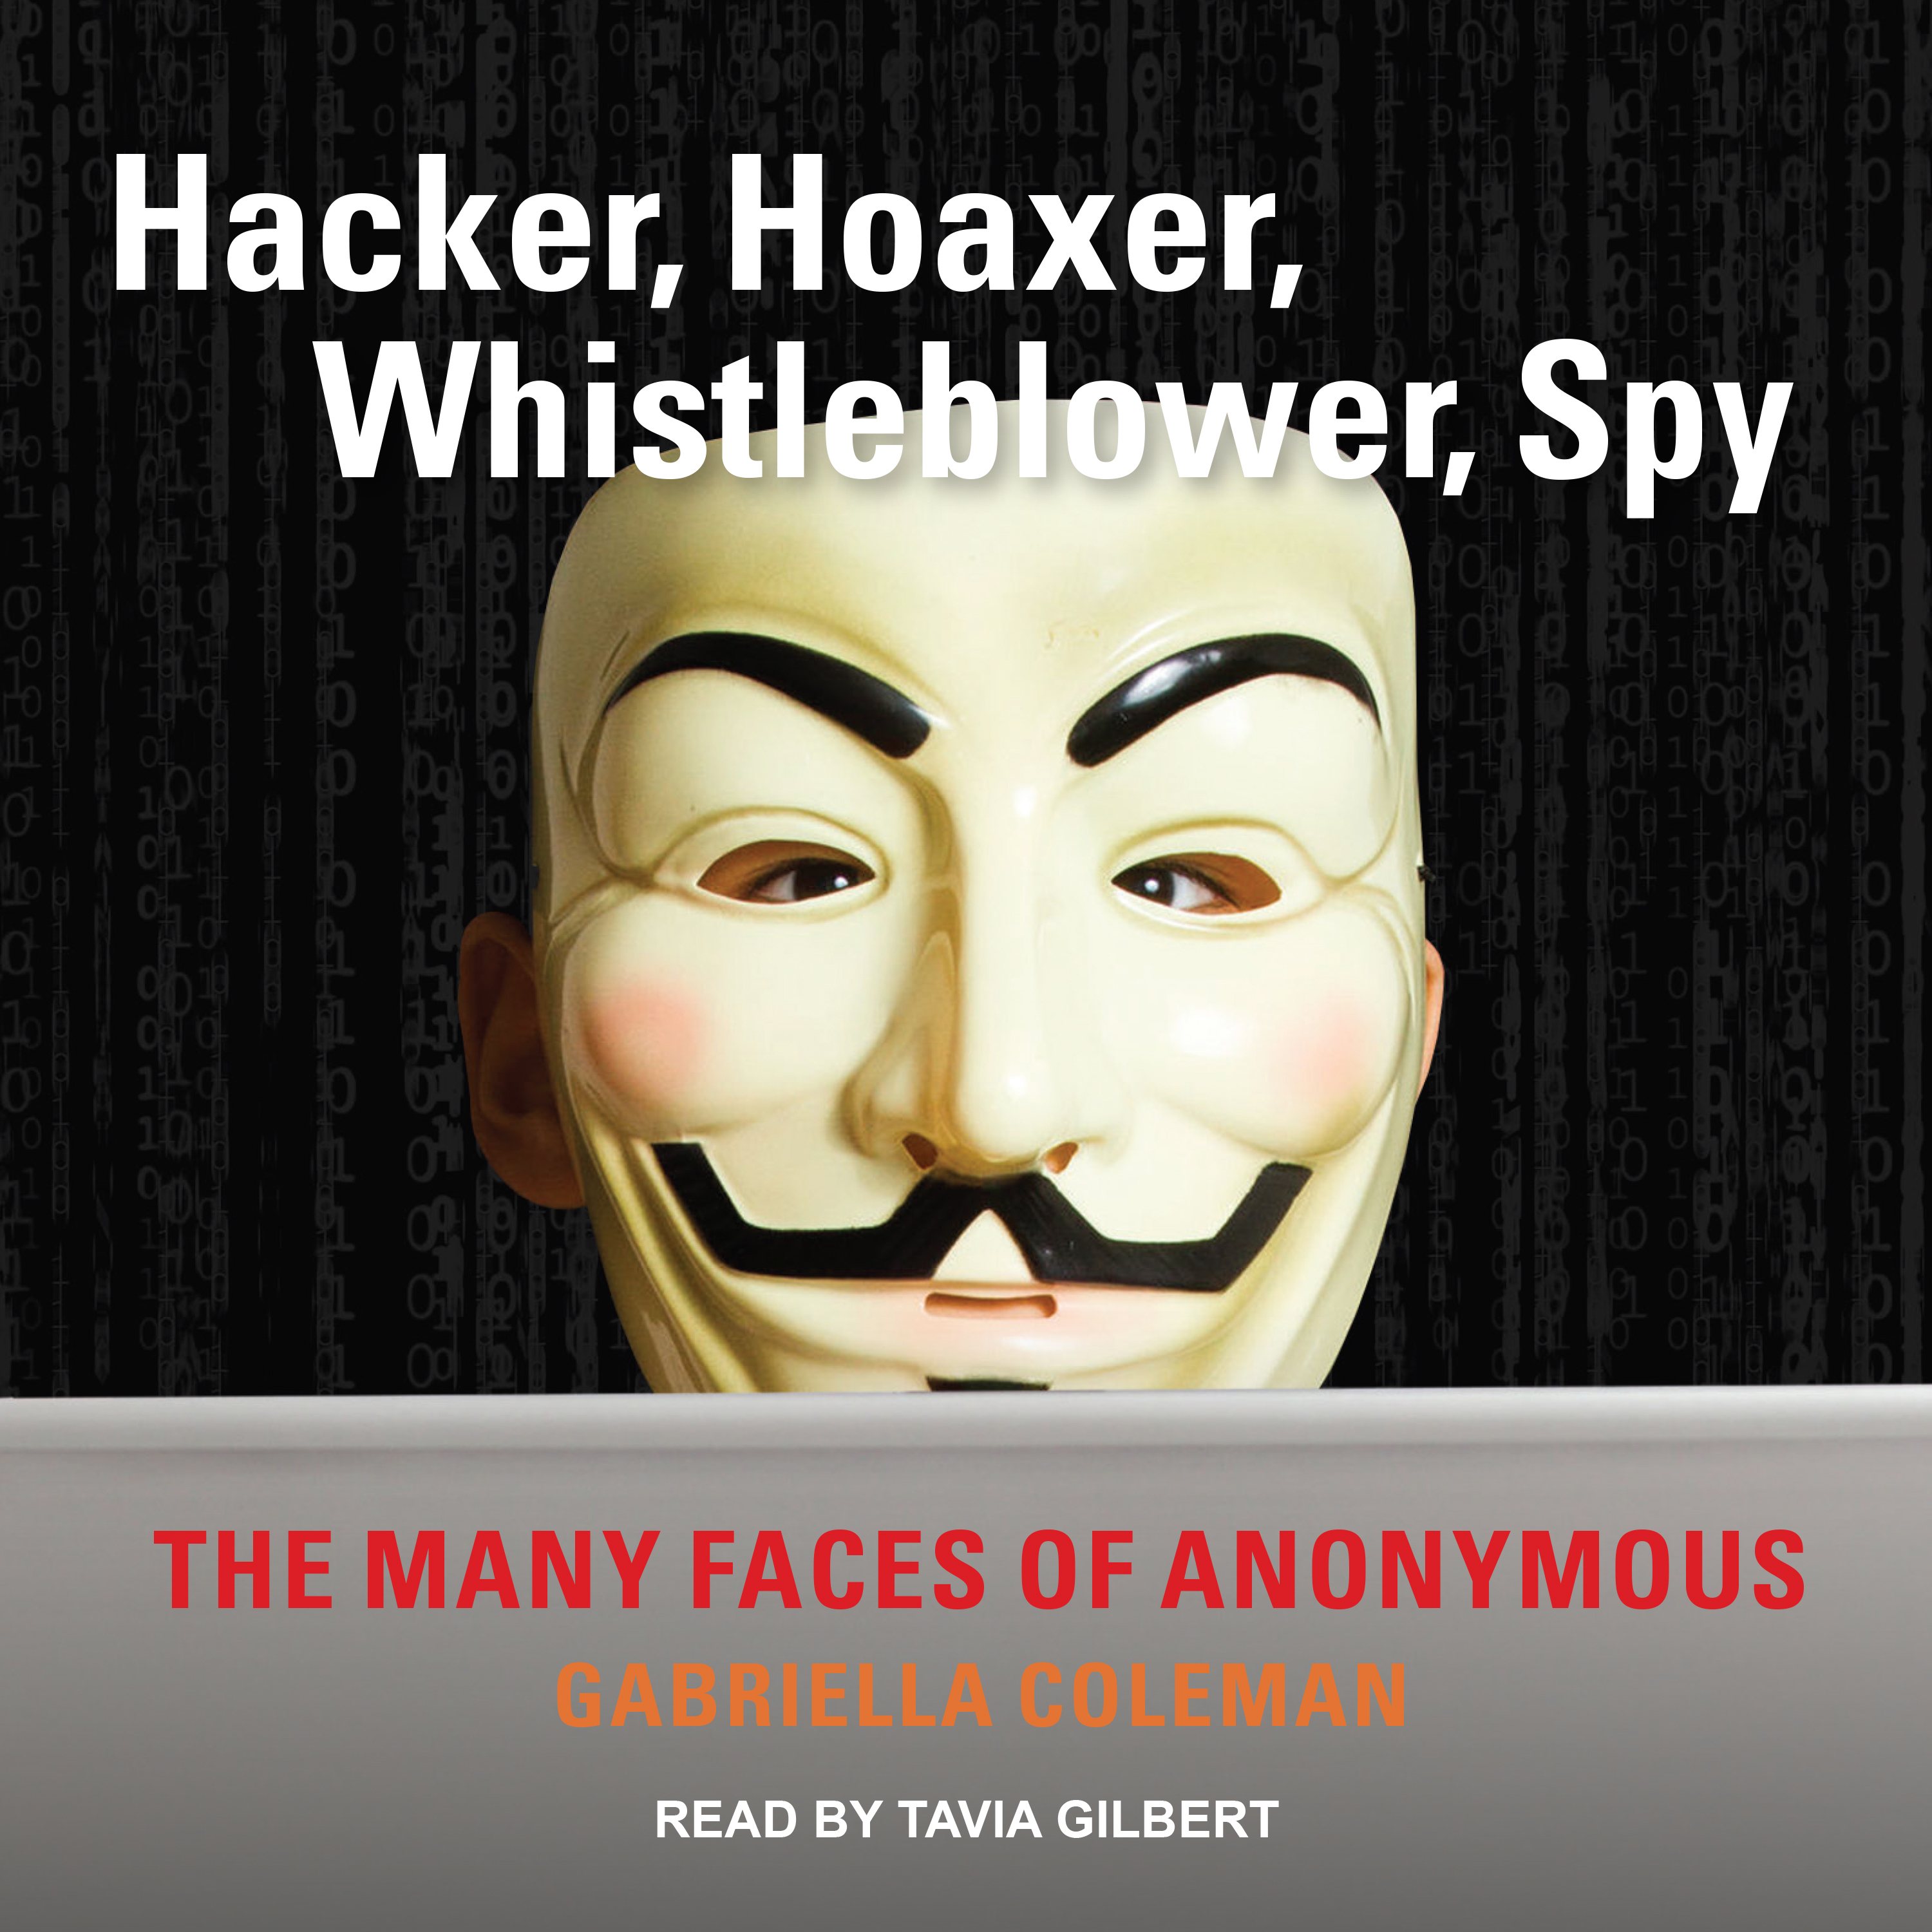 Printable Hacker, Hoaxer, Whistleblower, Spy: The Many Faces of Anonymous Audiobook Cover Art